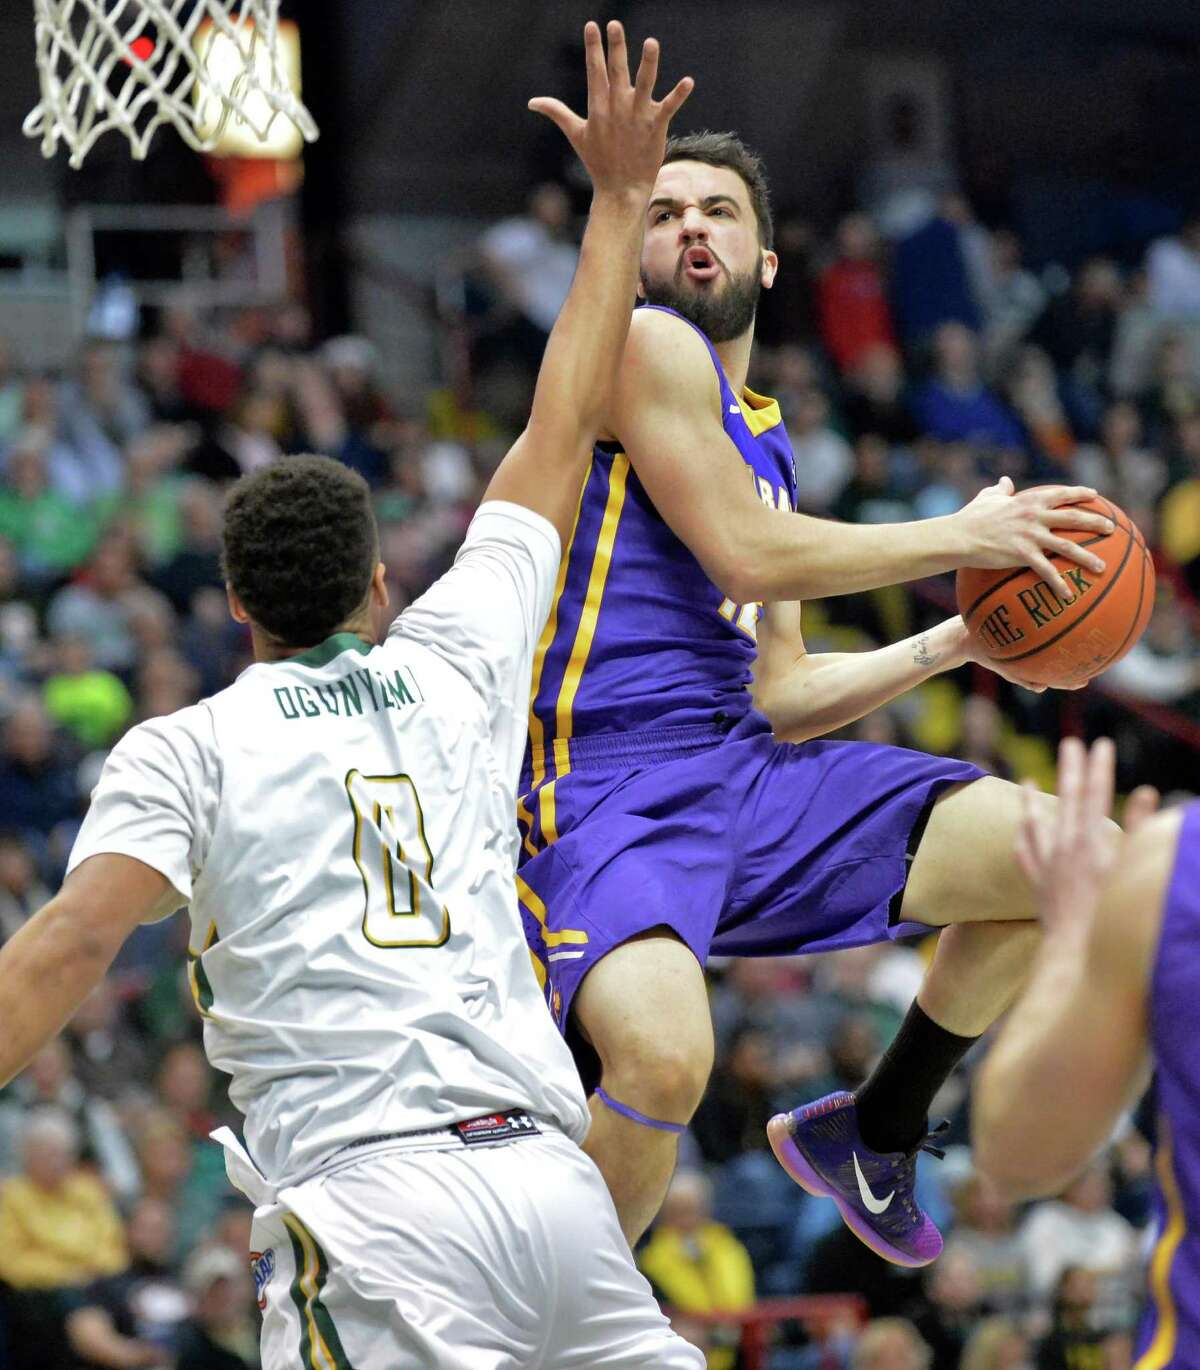 UAlbany's #12 Peter Hooley gets to the basket over Siena's #0 Javion Ogunyemi, left, during Saturday's game at the Times Union Center Dec. 12, 2015 in Albany, NY. (John Carl D'Annibale / Times Union)